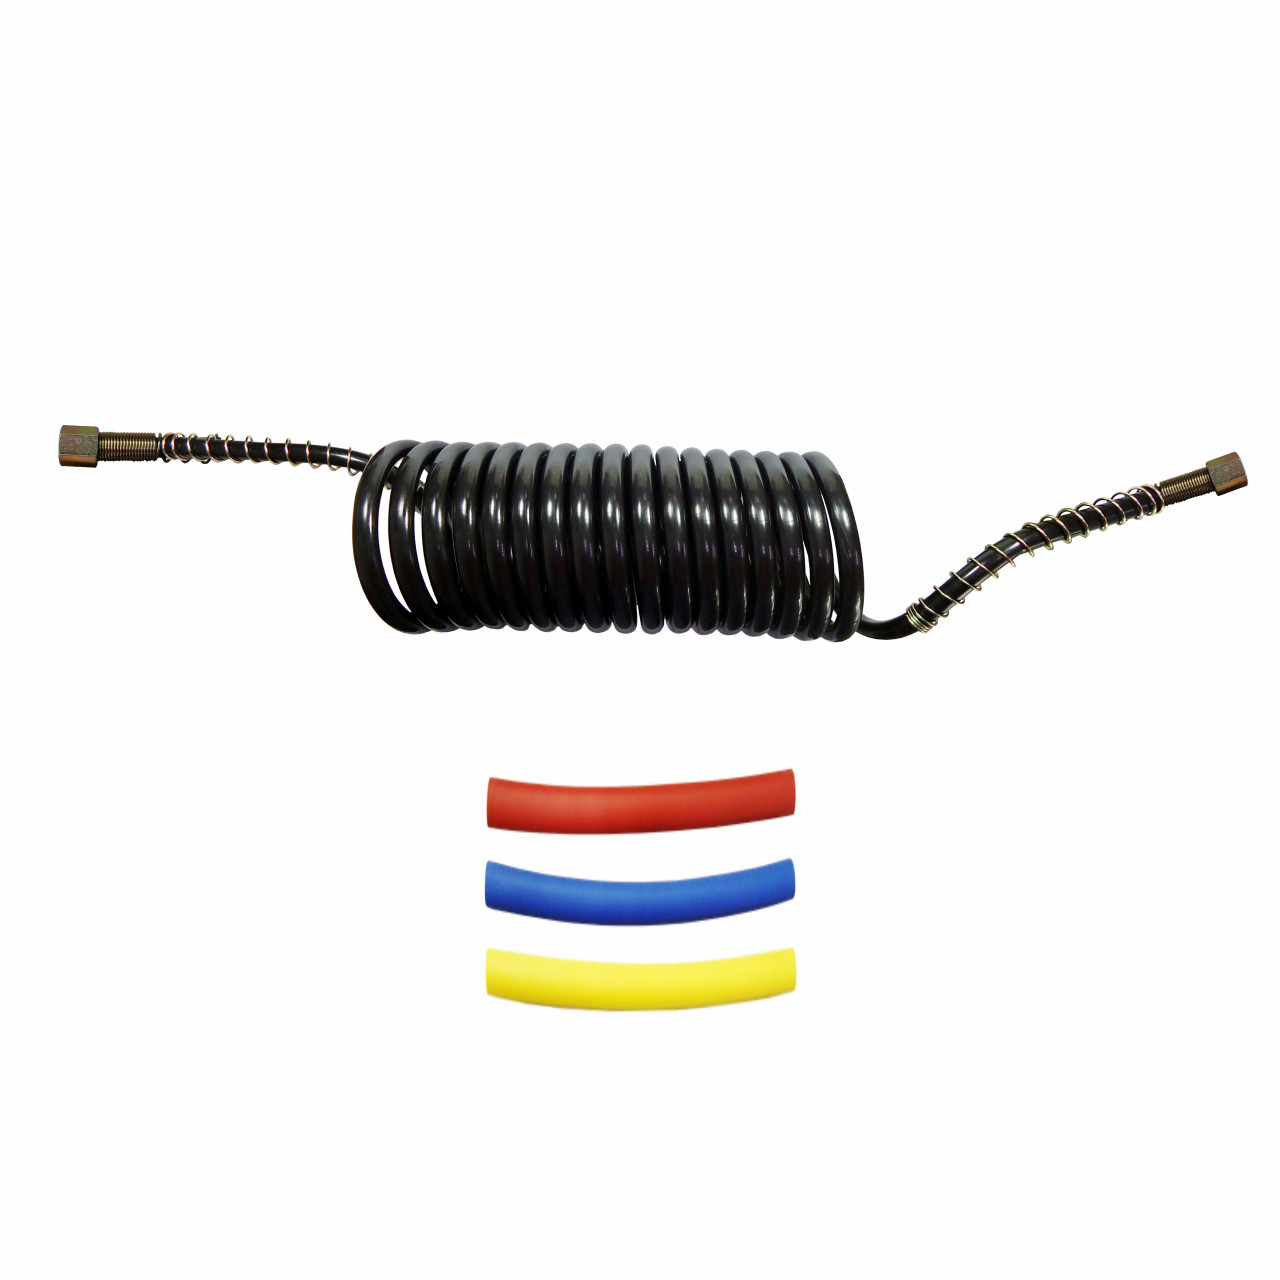 DNI8438 – Spiral Hose for Air Brake 5.5m Female x Female M16 with Heat Shrink Kit Colors